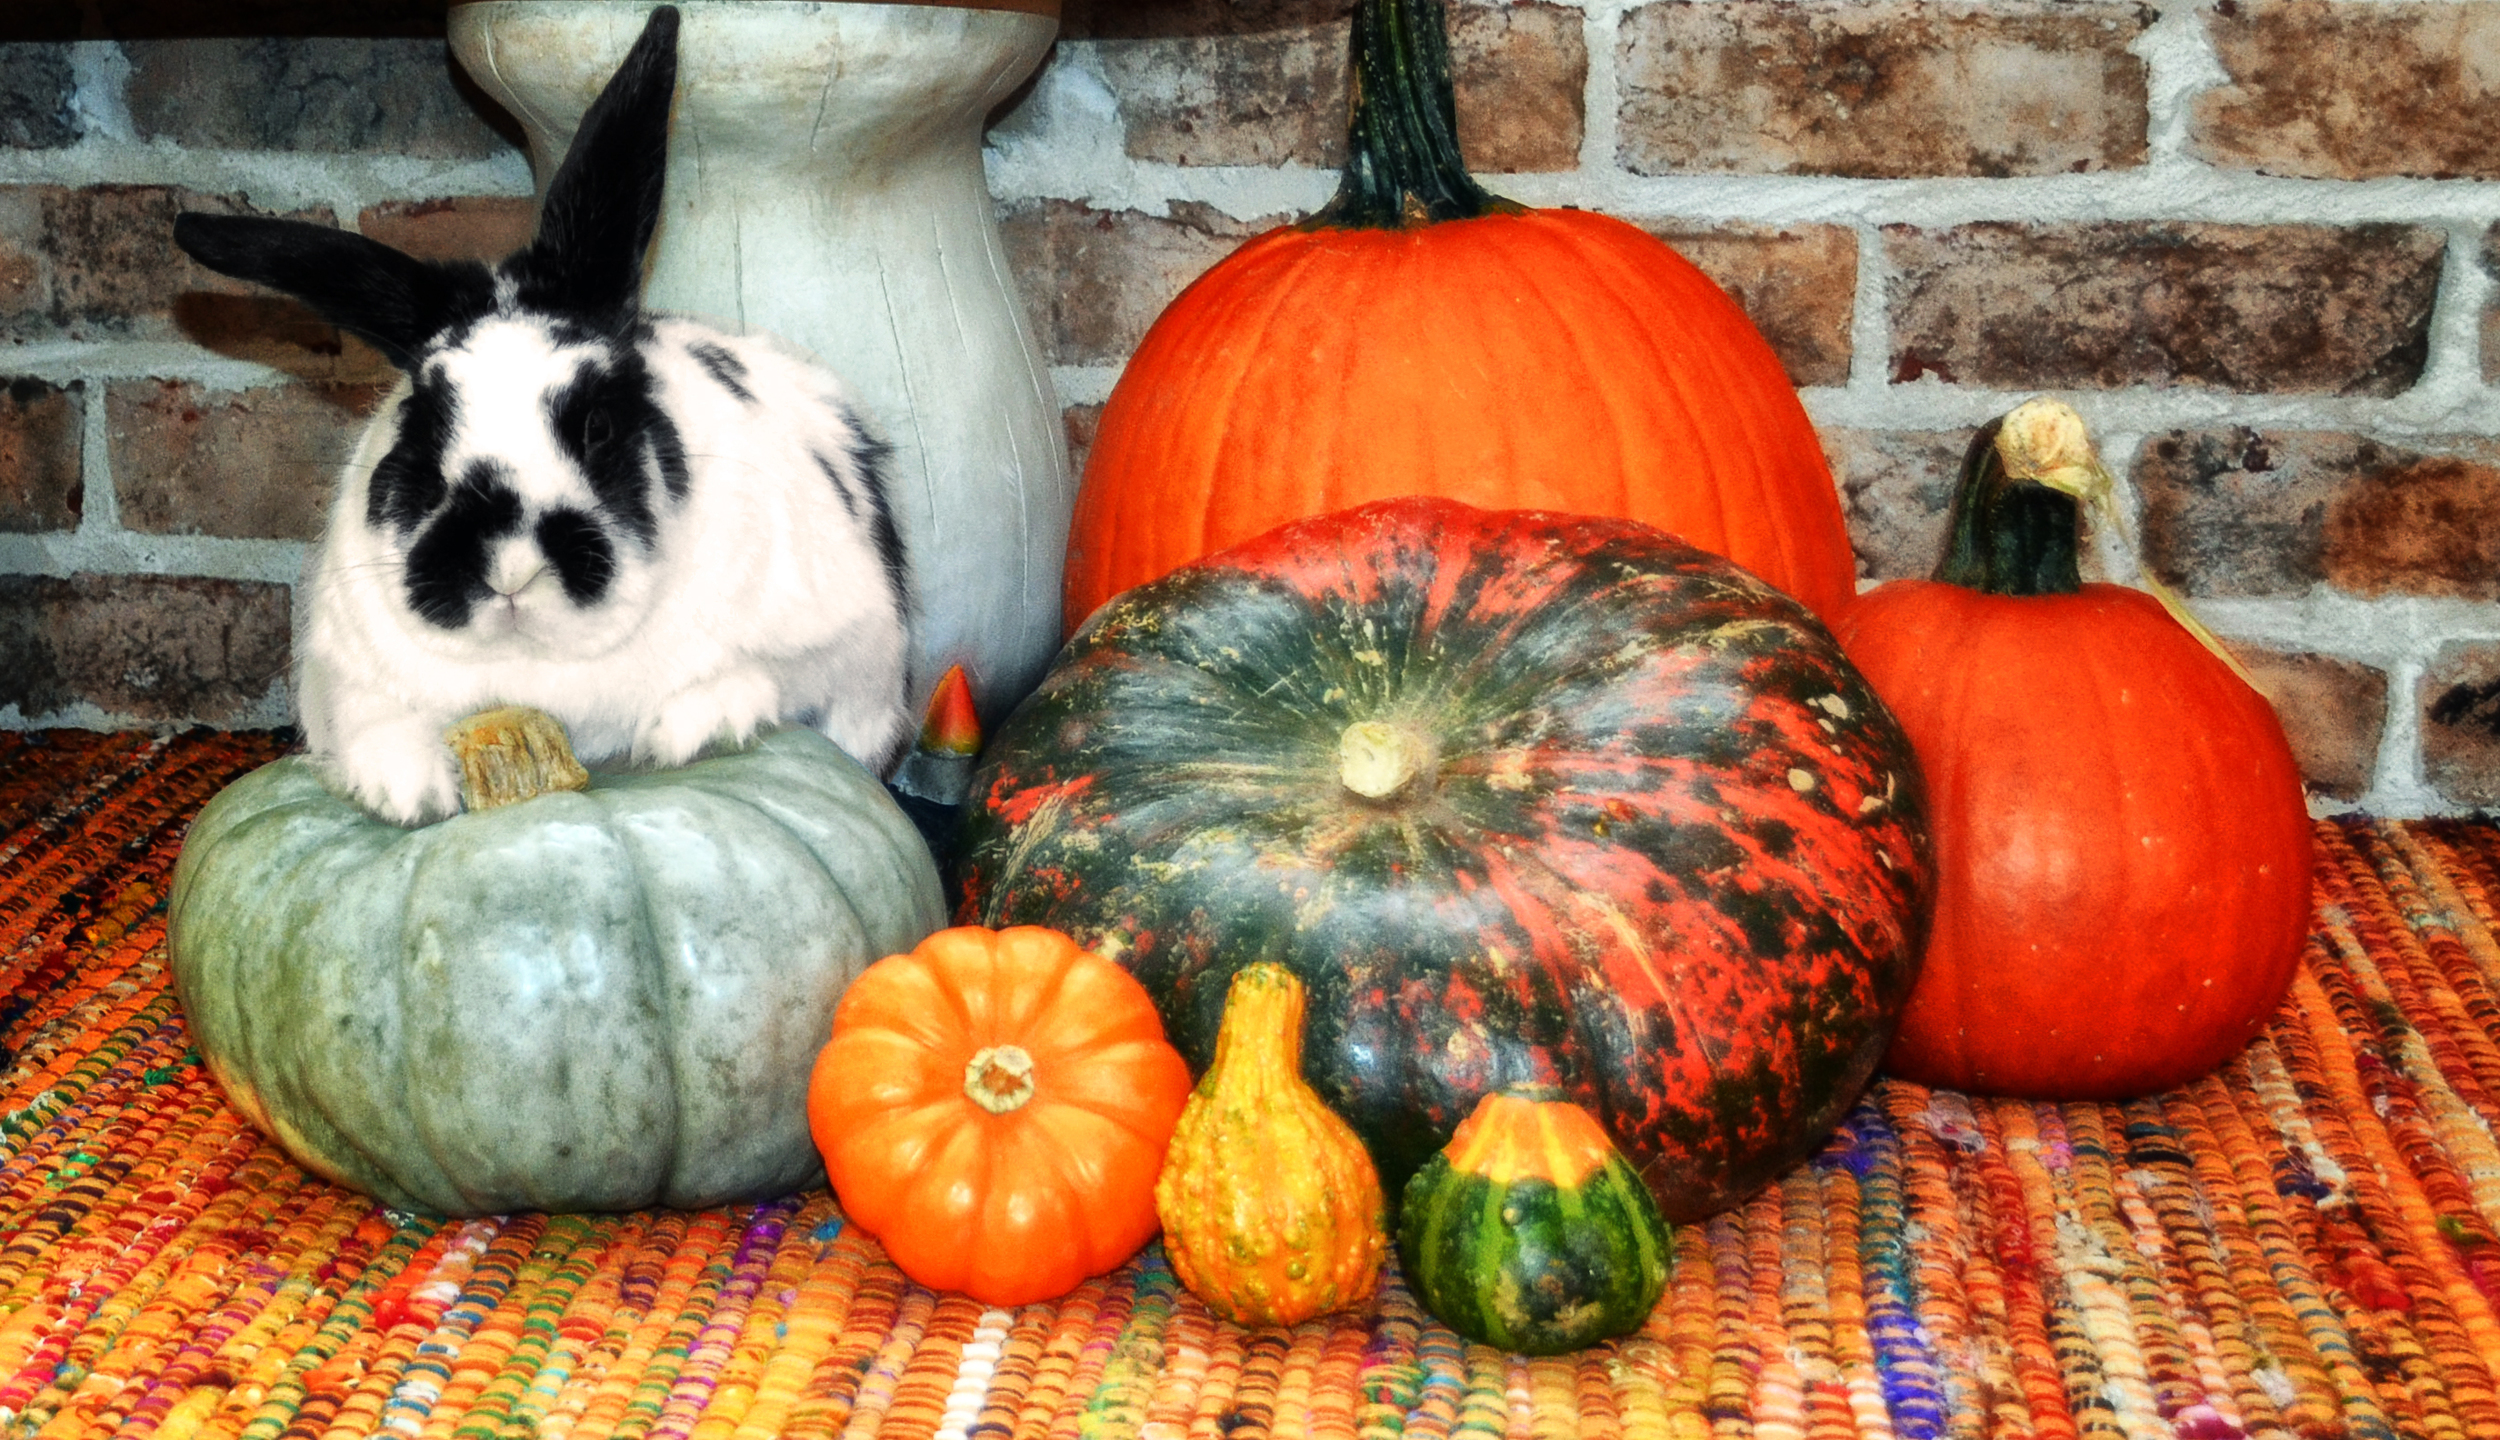 one day I came home to find Narwal kinda riding one of the pumpkins I had for decoration., It ended up being my favorite picture of him.